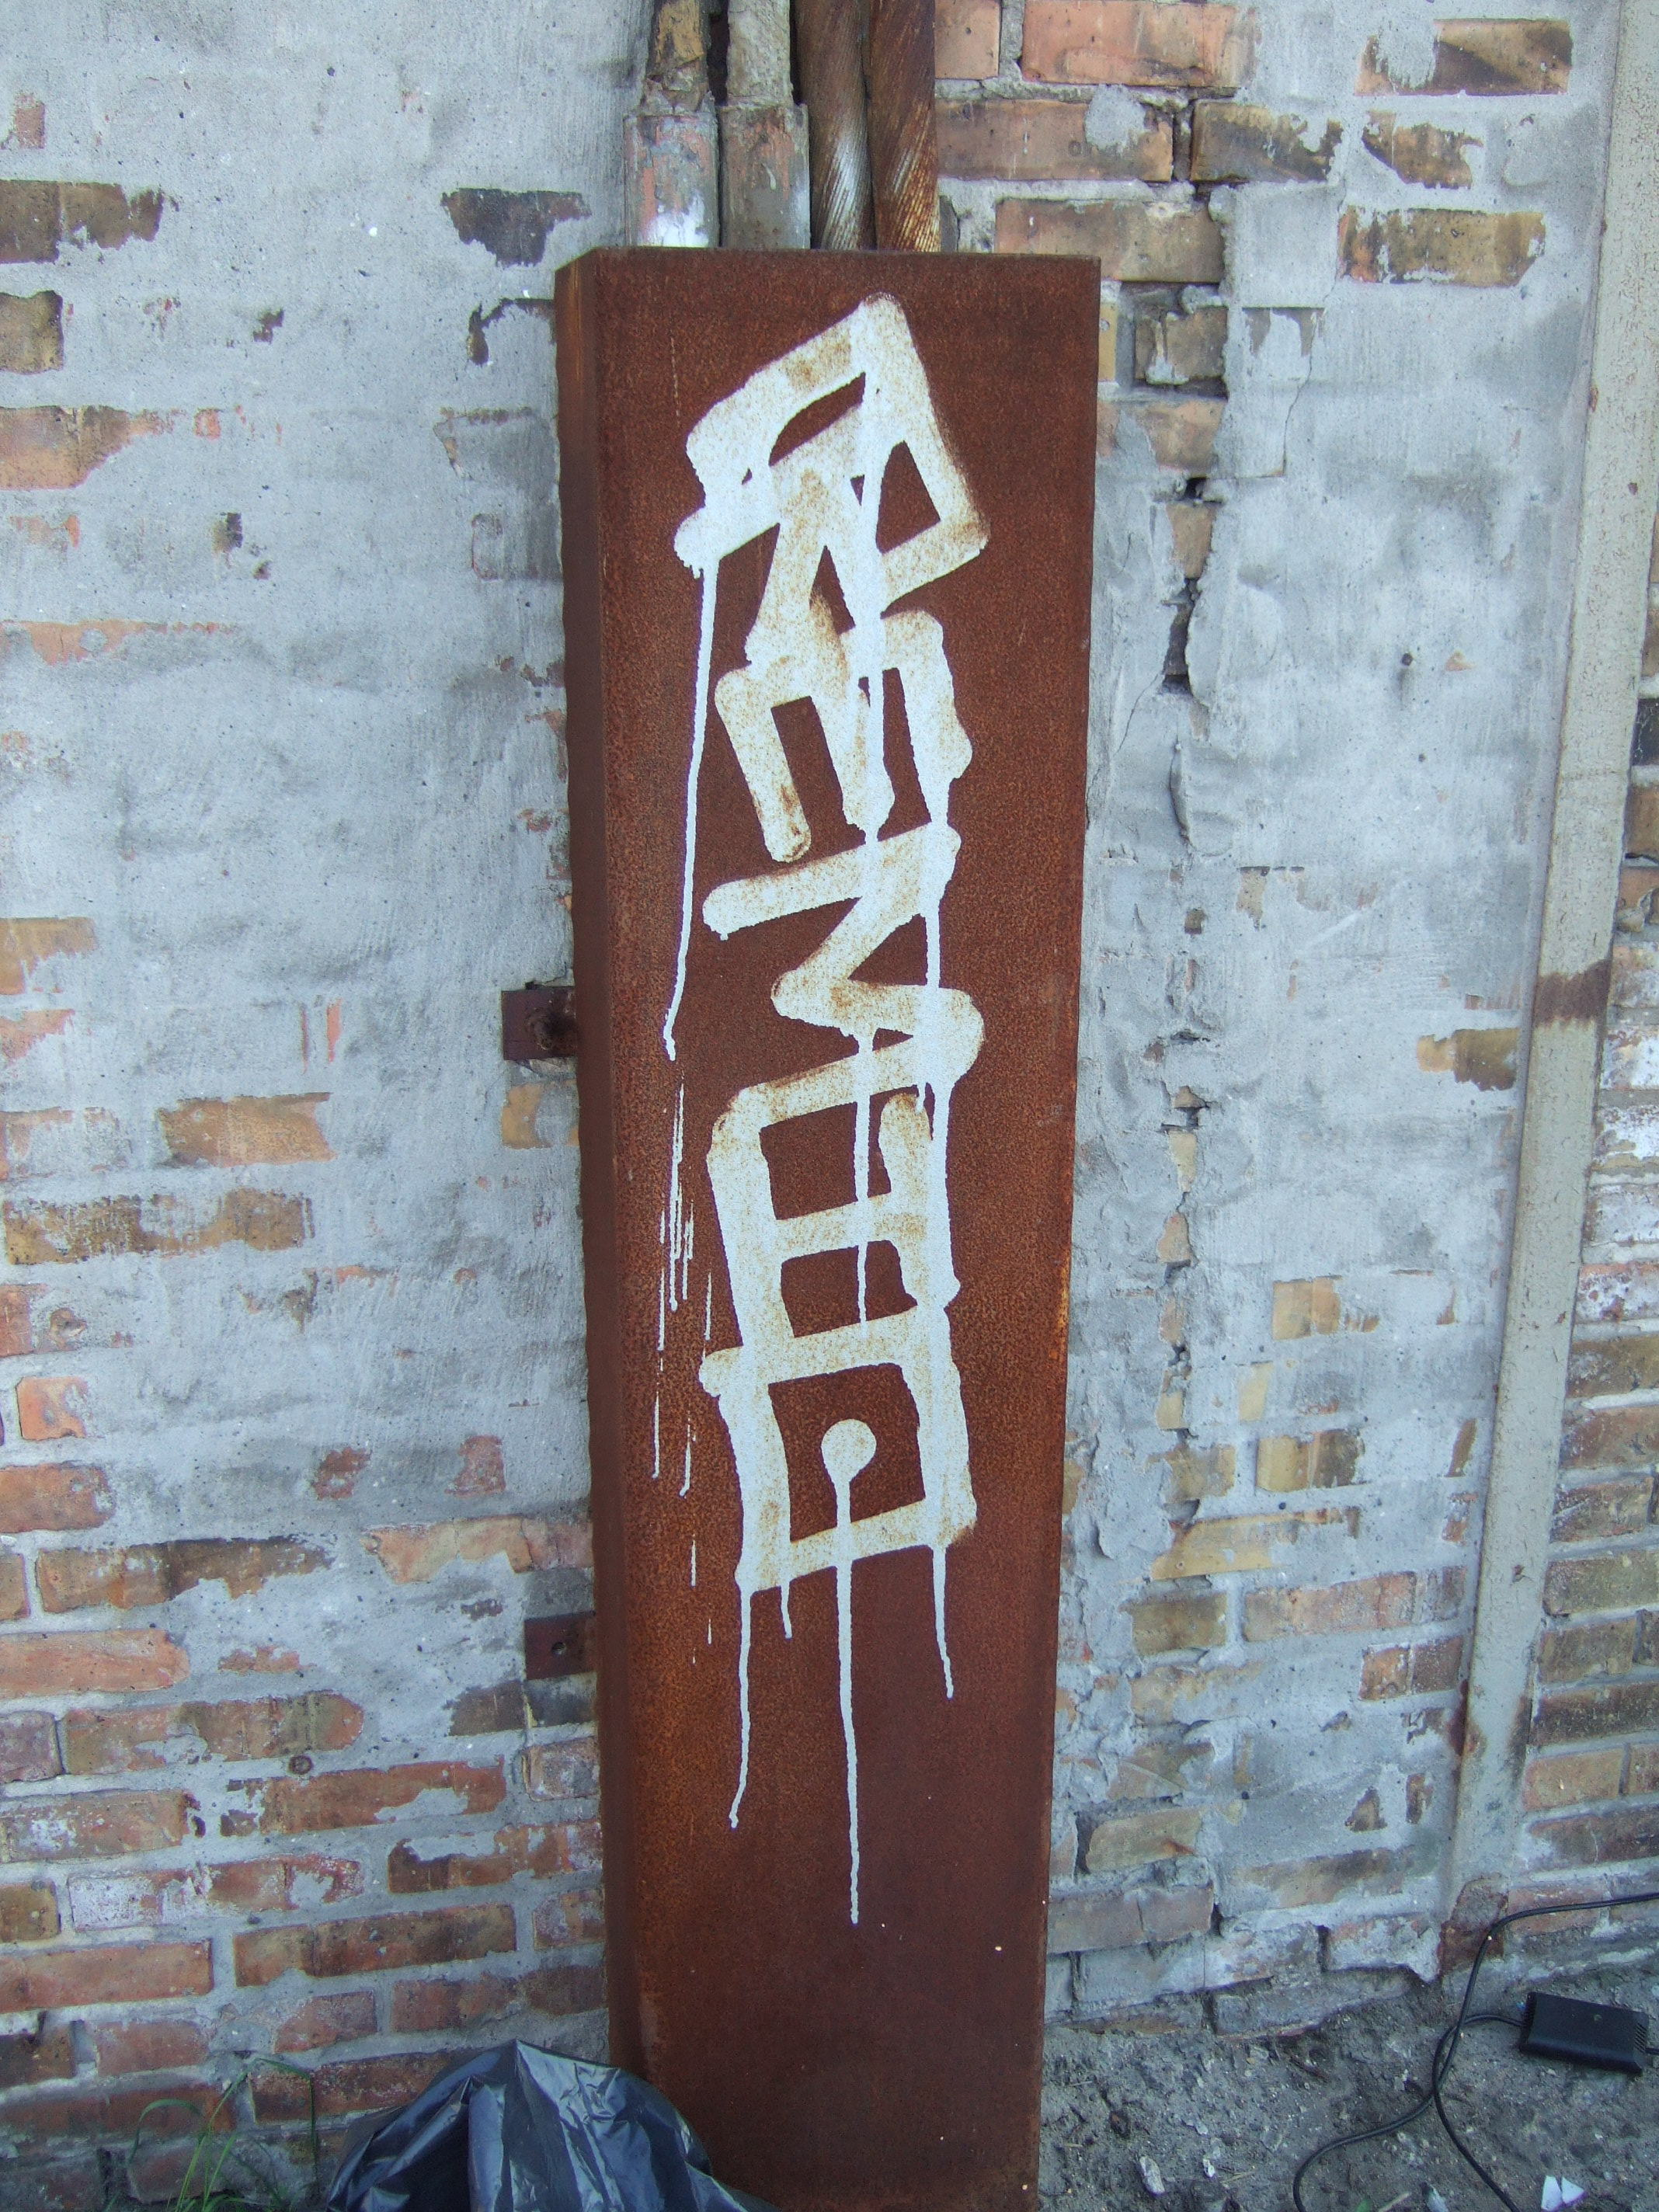 tabus graffiti tag rust metal copper wires electricity